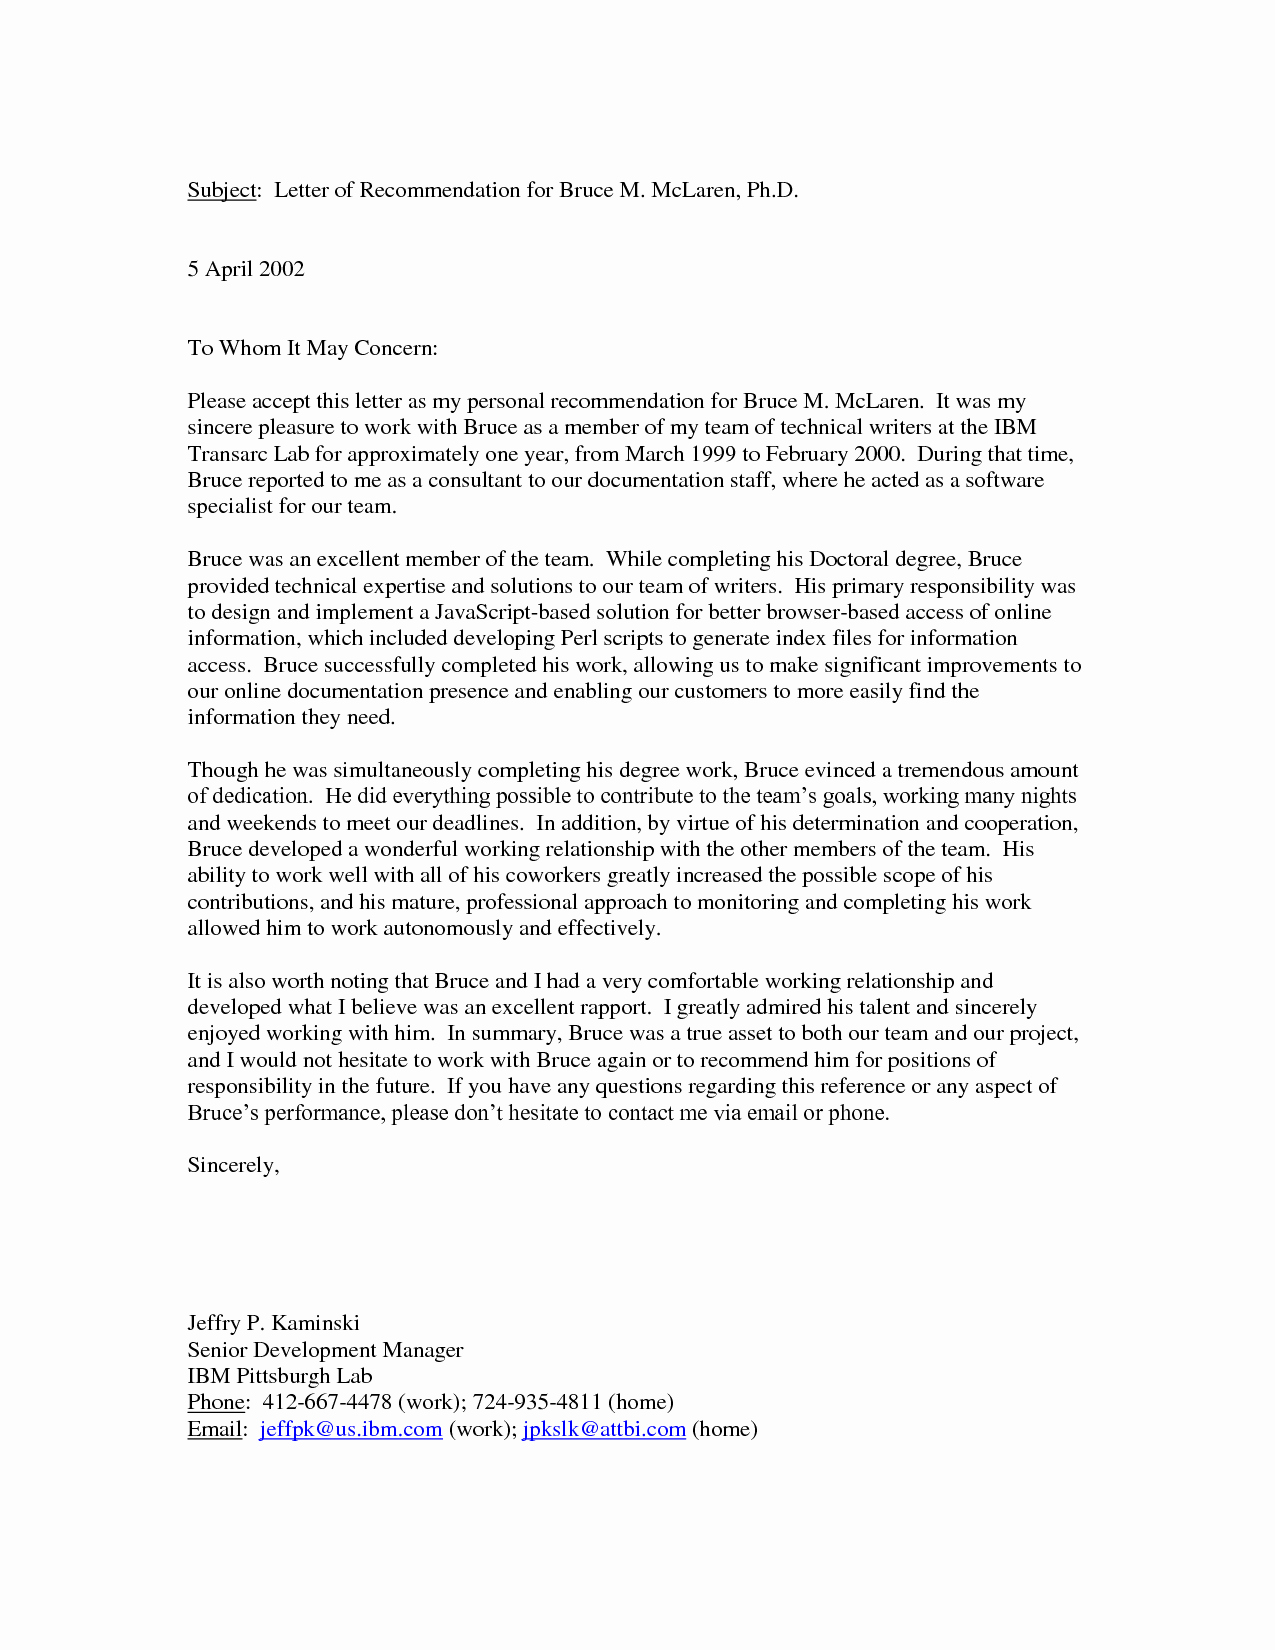 Free Reference Letter Template Inspirational Personal Letter Re Mendation